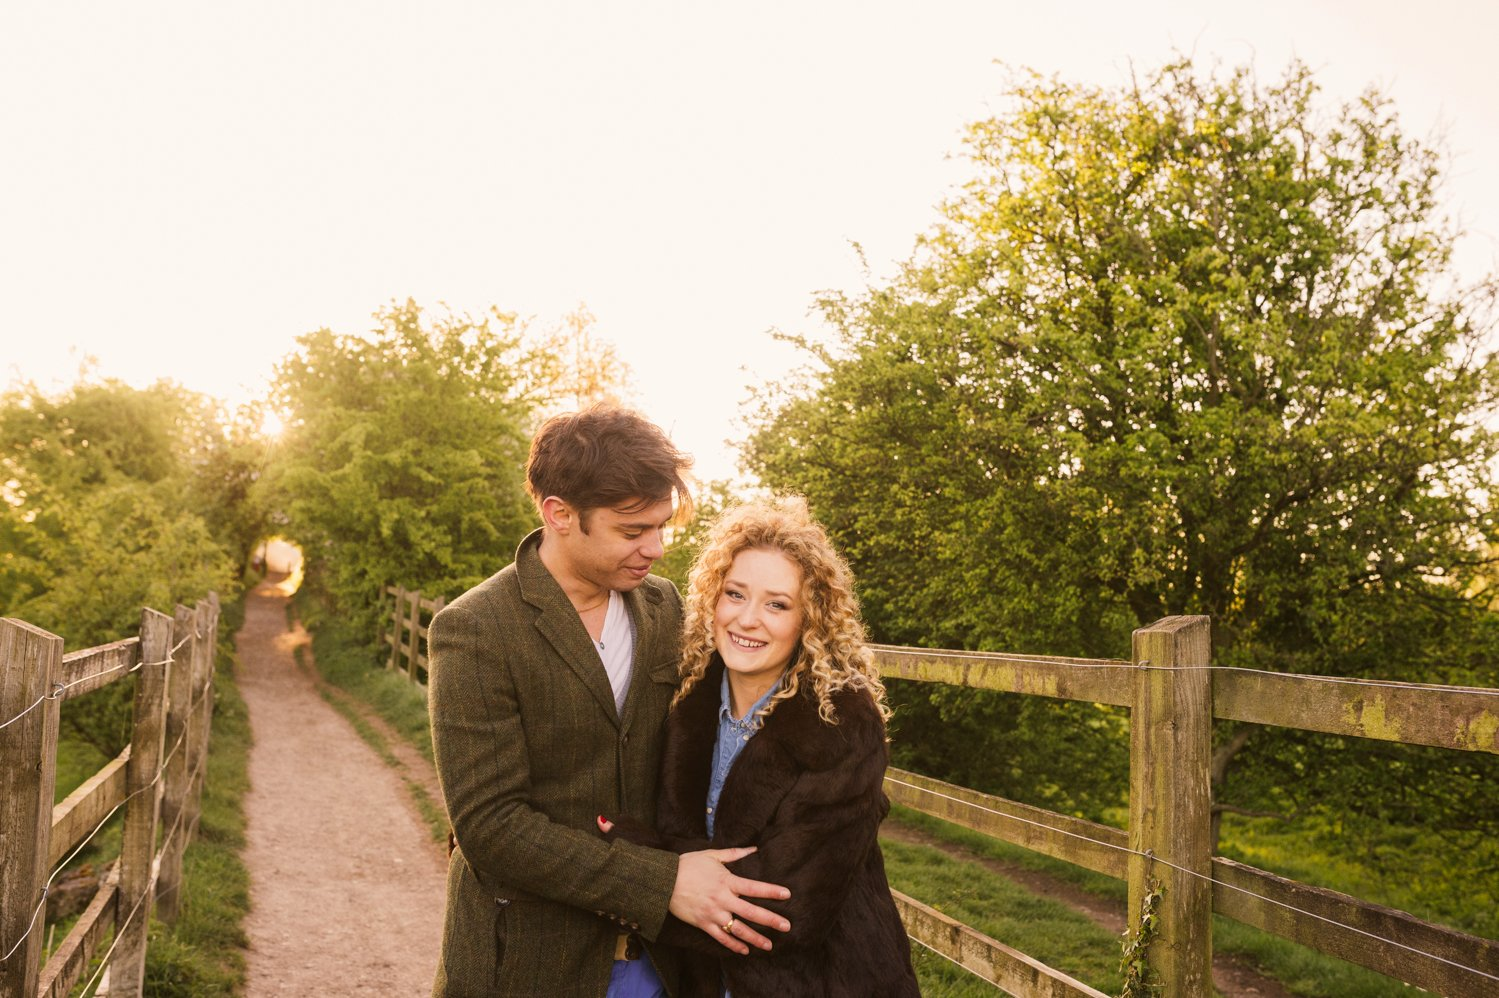 portmeadow engagement photographer oxford-16